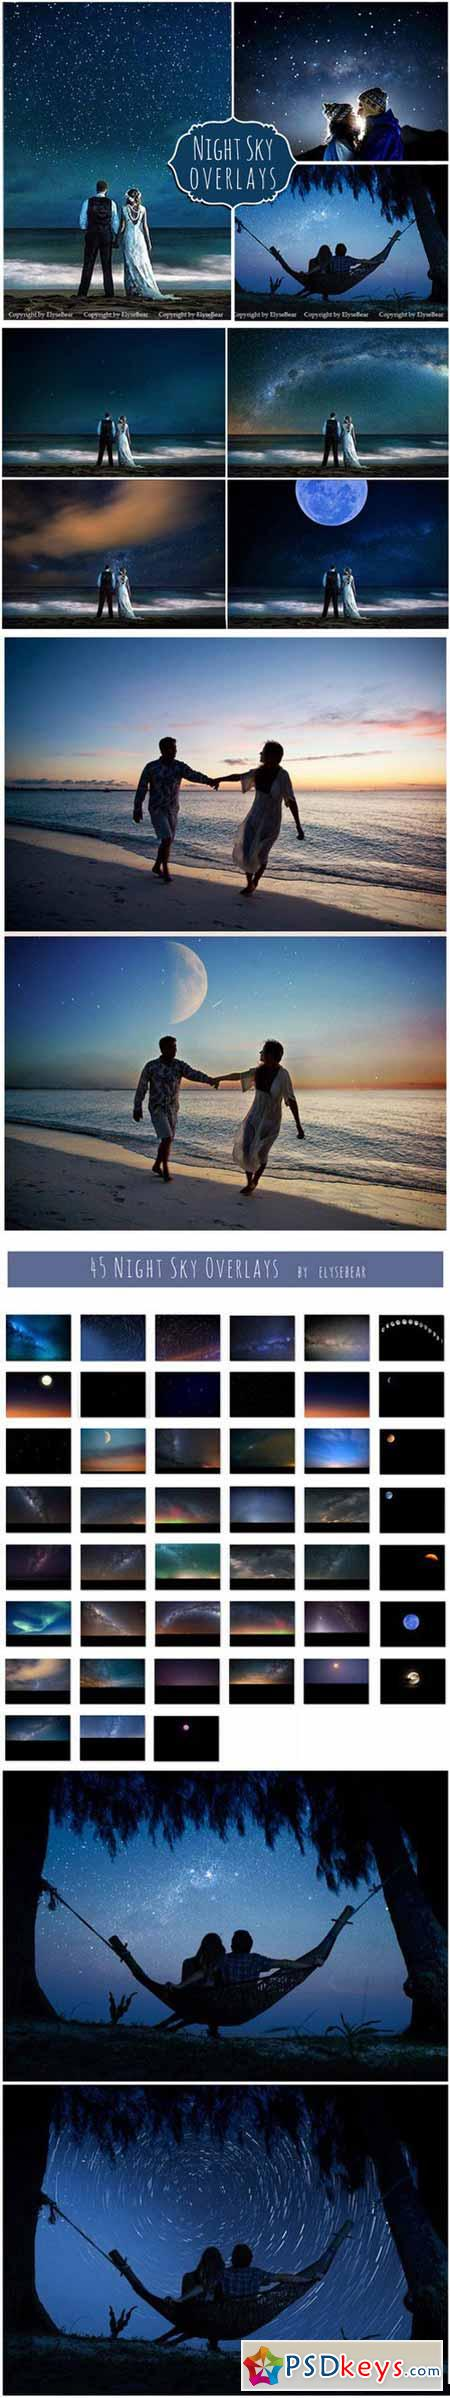 45 Night Sky Photoshop Overlays 387716